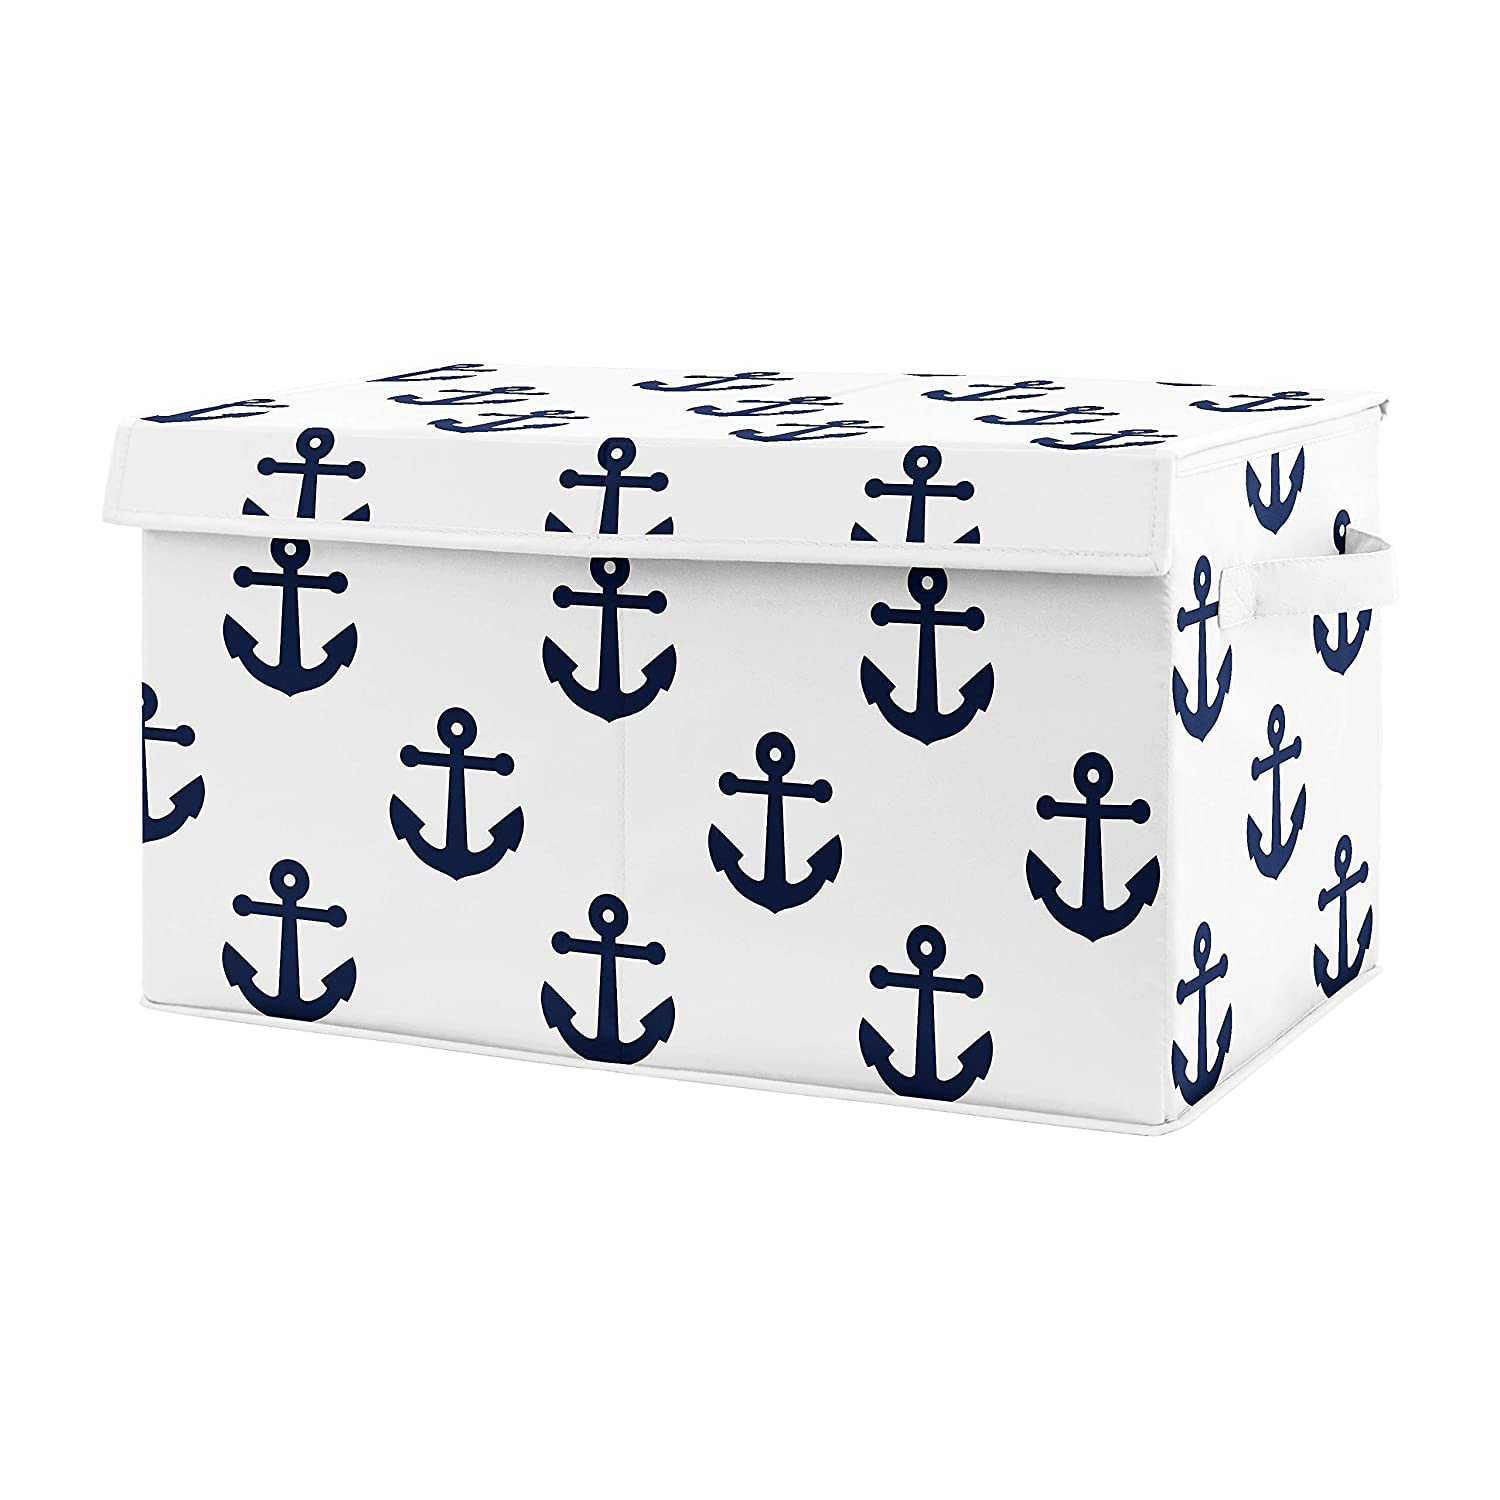 Sweet Jojo Designs Navy Blue White Anchors Boy Girl Small Fabric Toy Bin Storage Box Chest for Baby Nursery or Kids Room - Nautical Theme Ocean Sailboat Sea Marine Sailor Anchor Unisex Gender Neutral